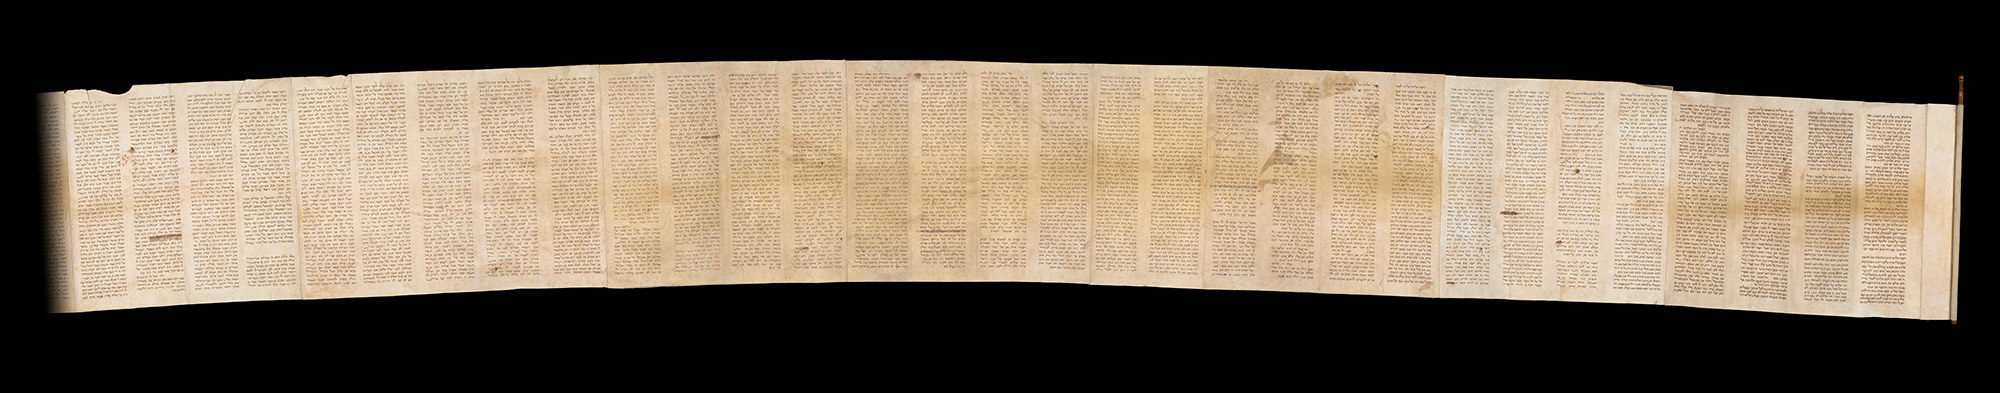 Unrolled Torah scroll from Kaifeng, China